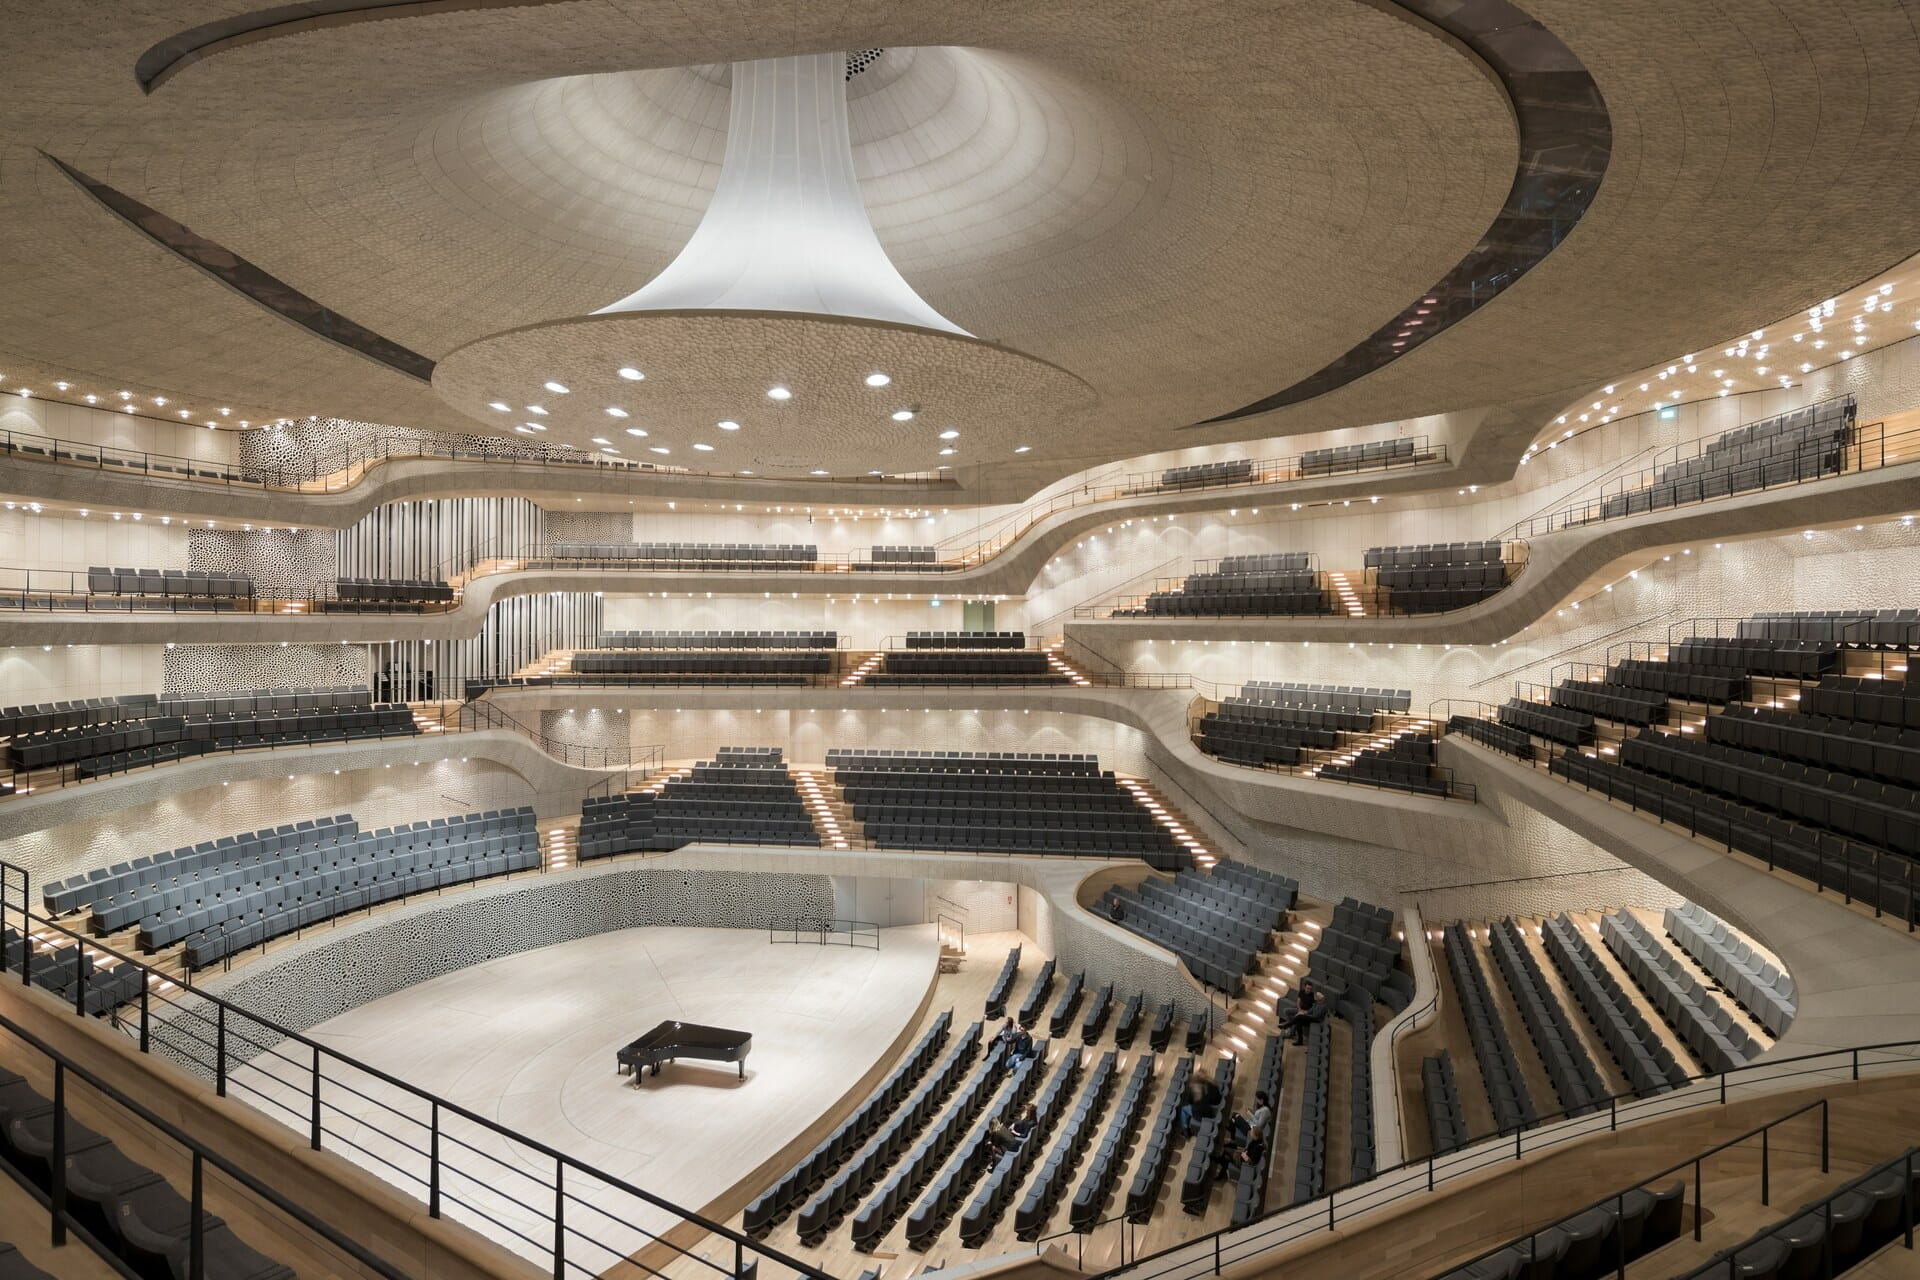 Check out this acoustically-perfect concert hall, designed with algorithmsElbphilharmonie